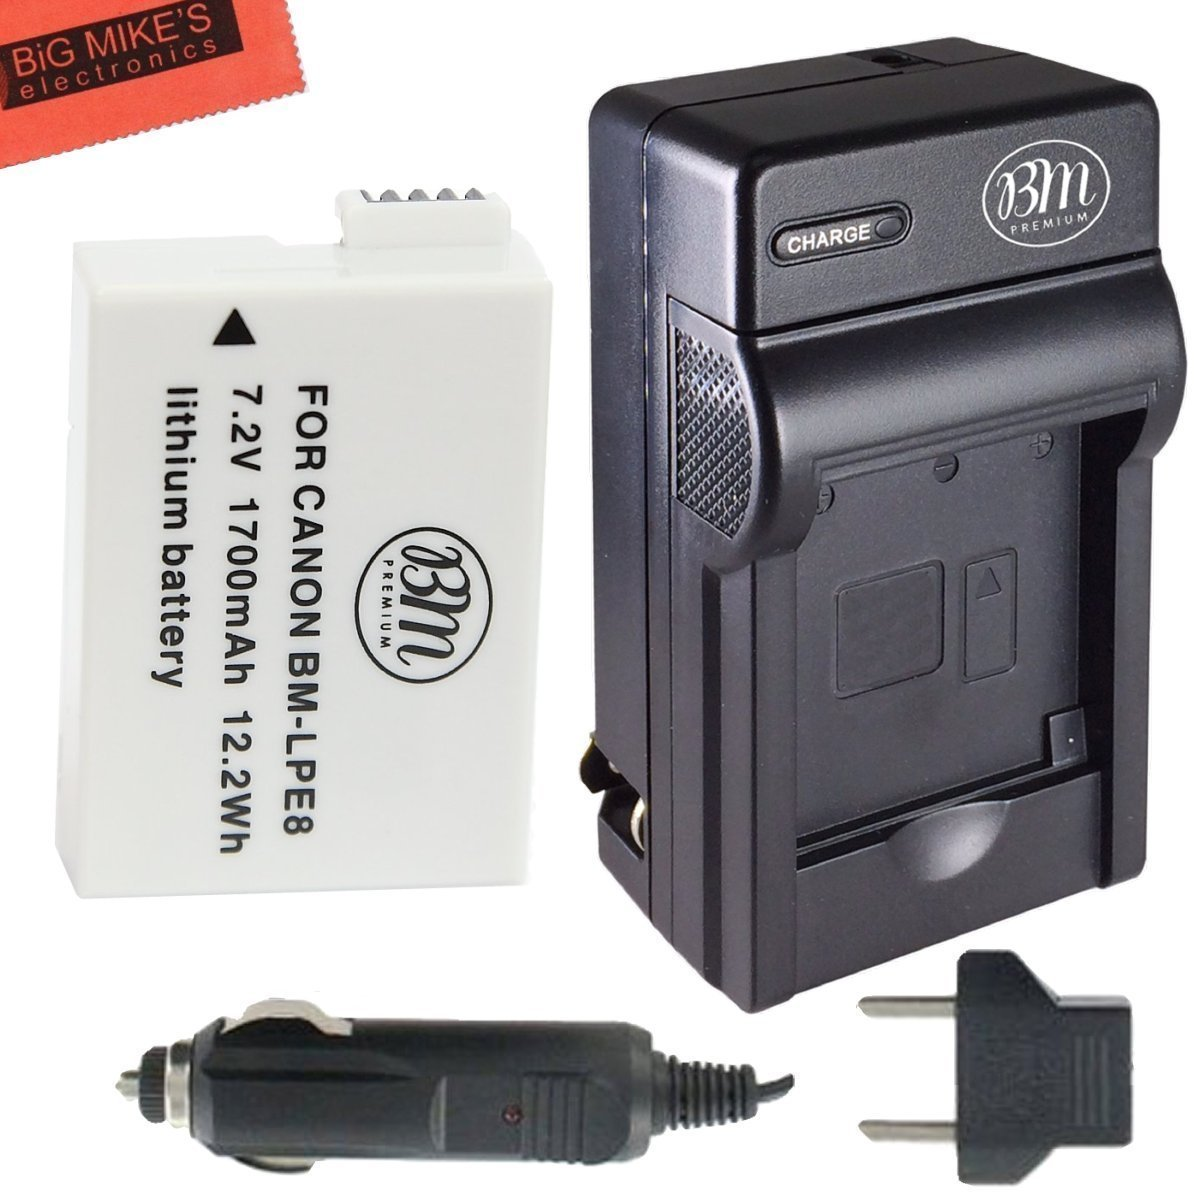 Replacement LP-E8 LPE8 Battery And Charger Kit For Canon Rebel T5i T4i T3i T2i DSLR Digital Camera + More!! Big Mike' s